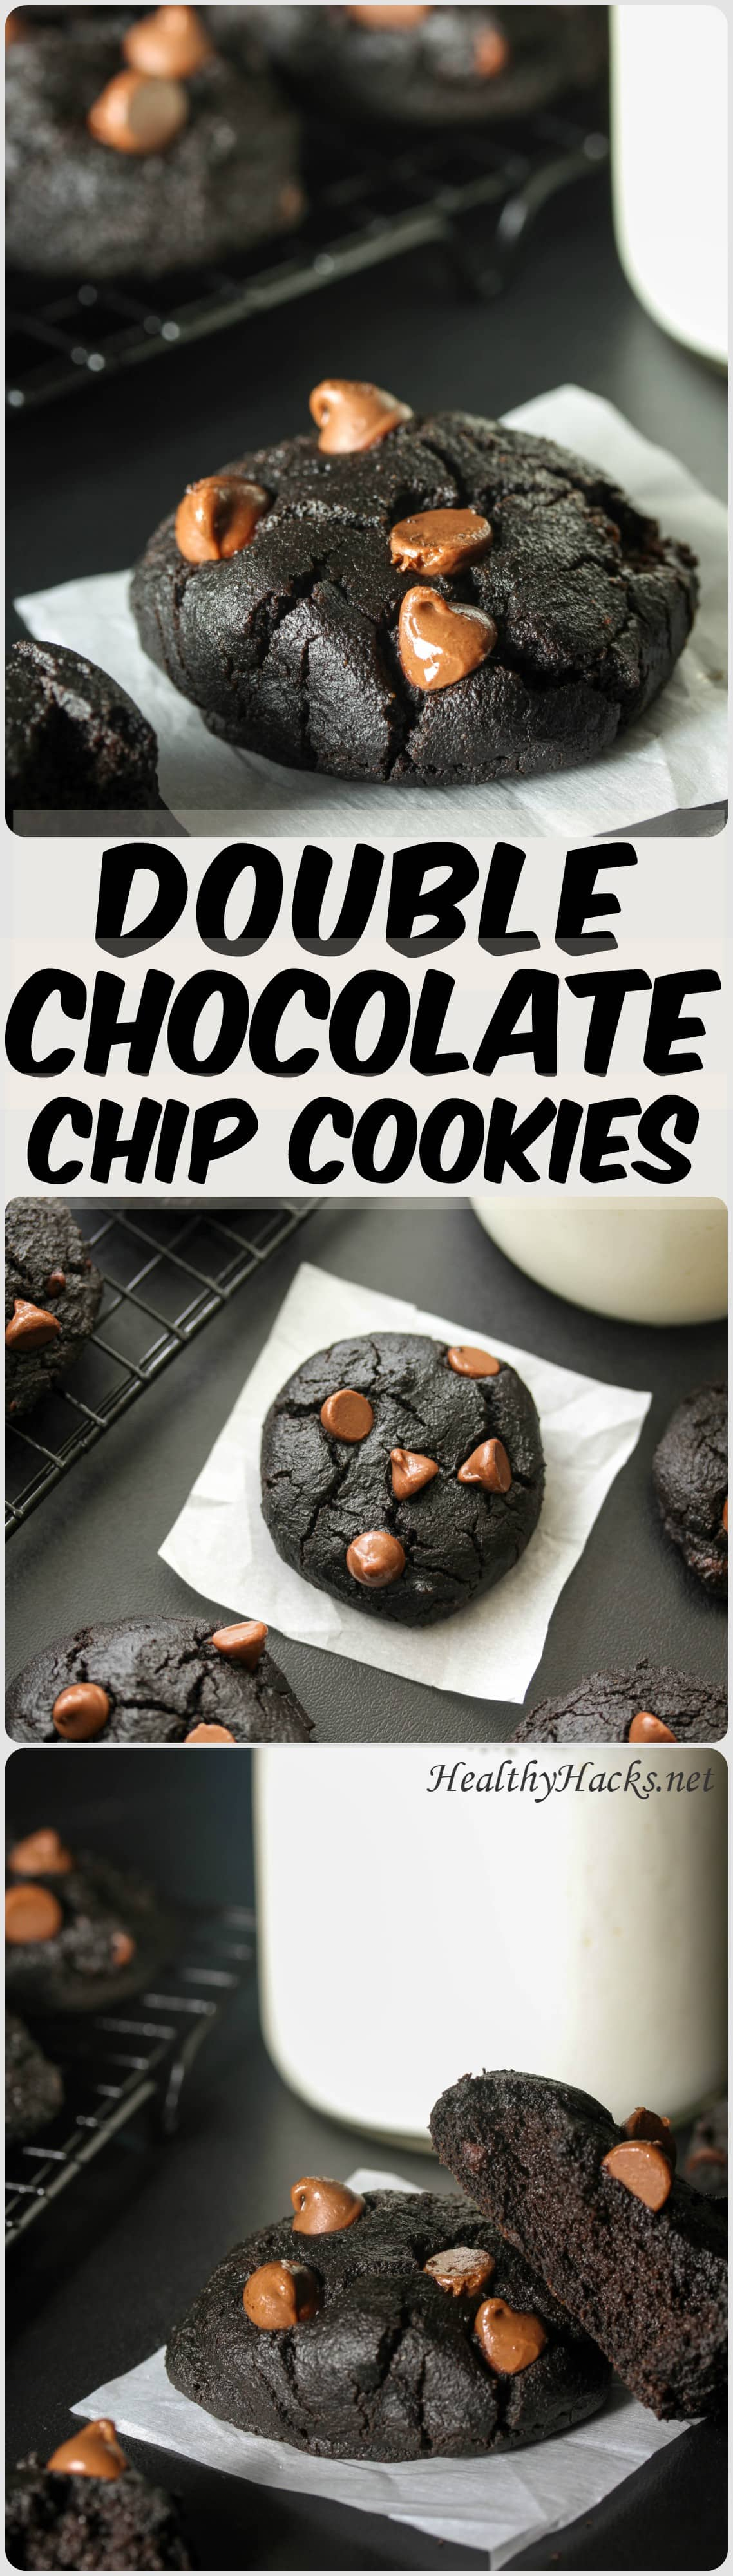 Double Chocolate Chip Cookies - high protein, low FODMAP